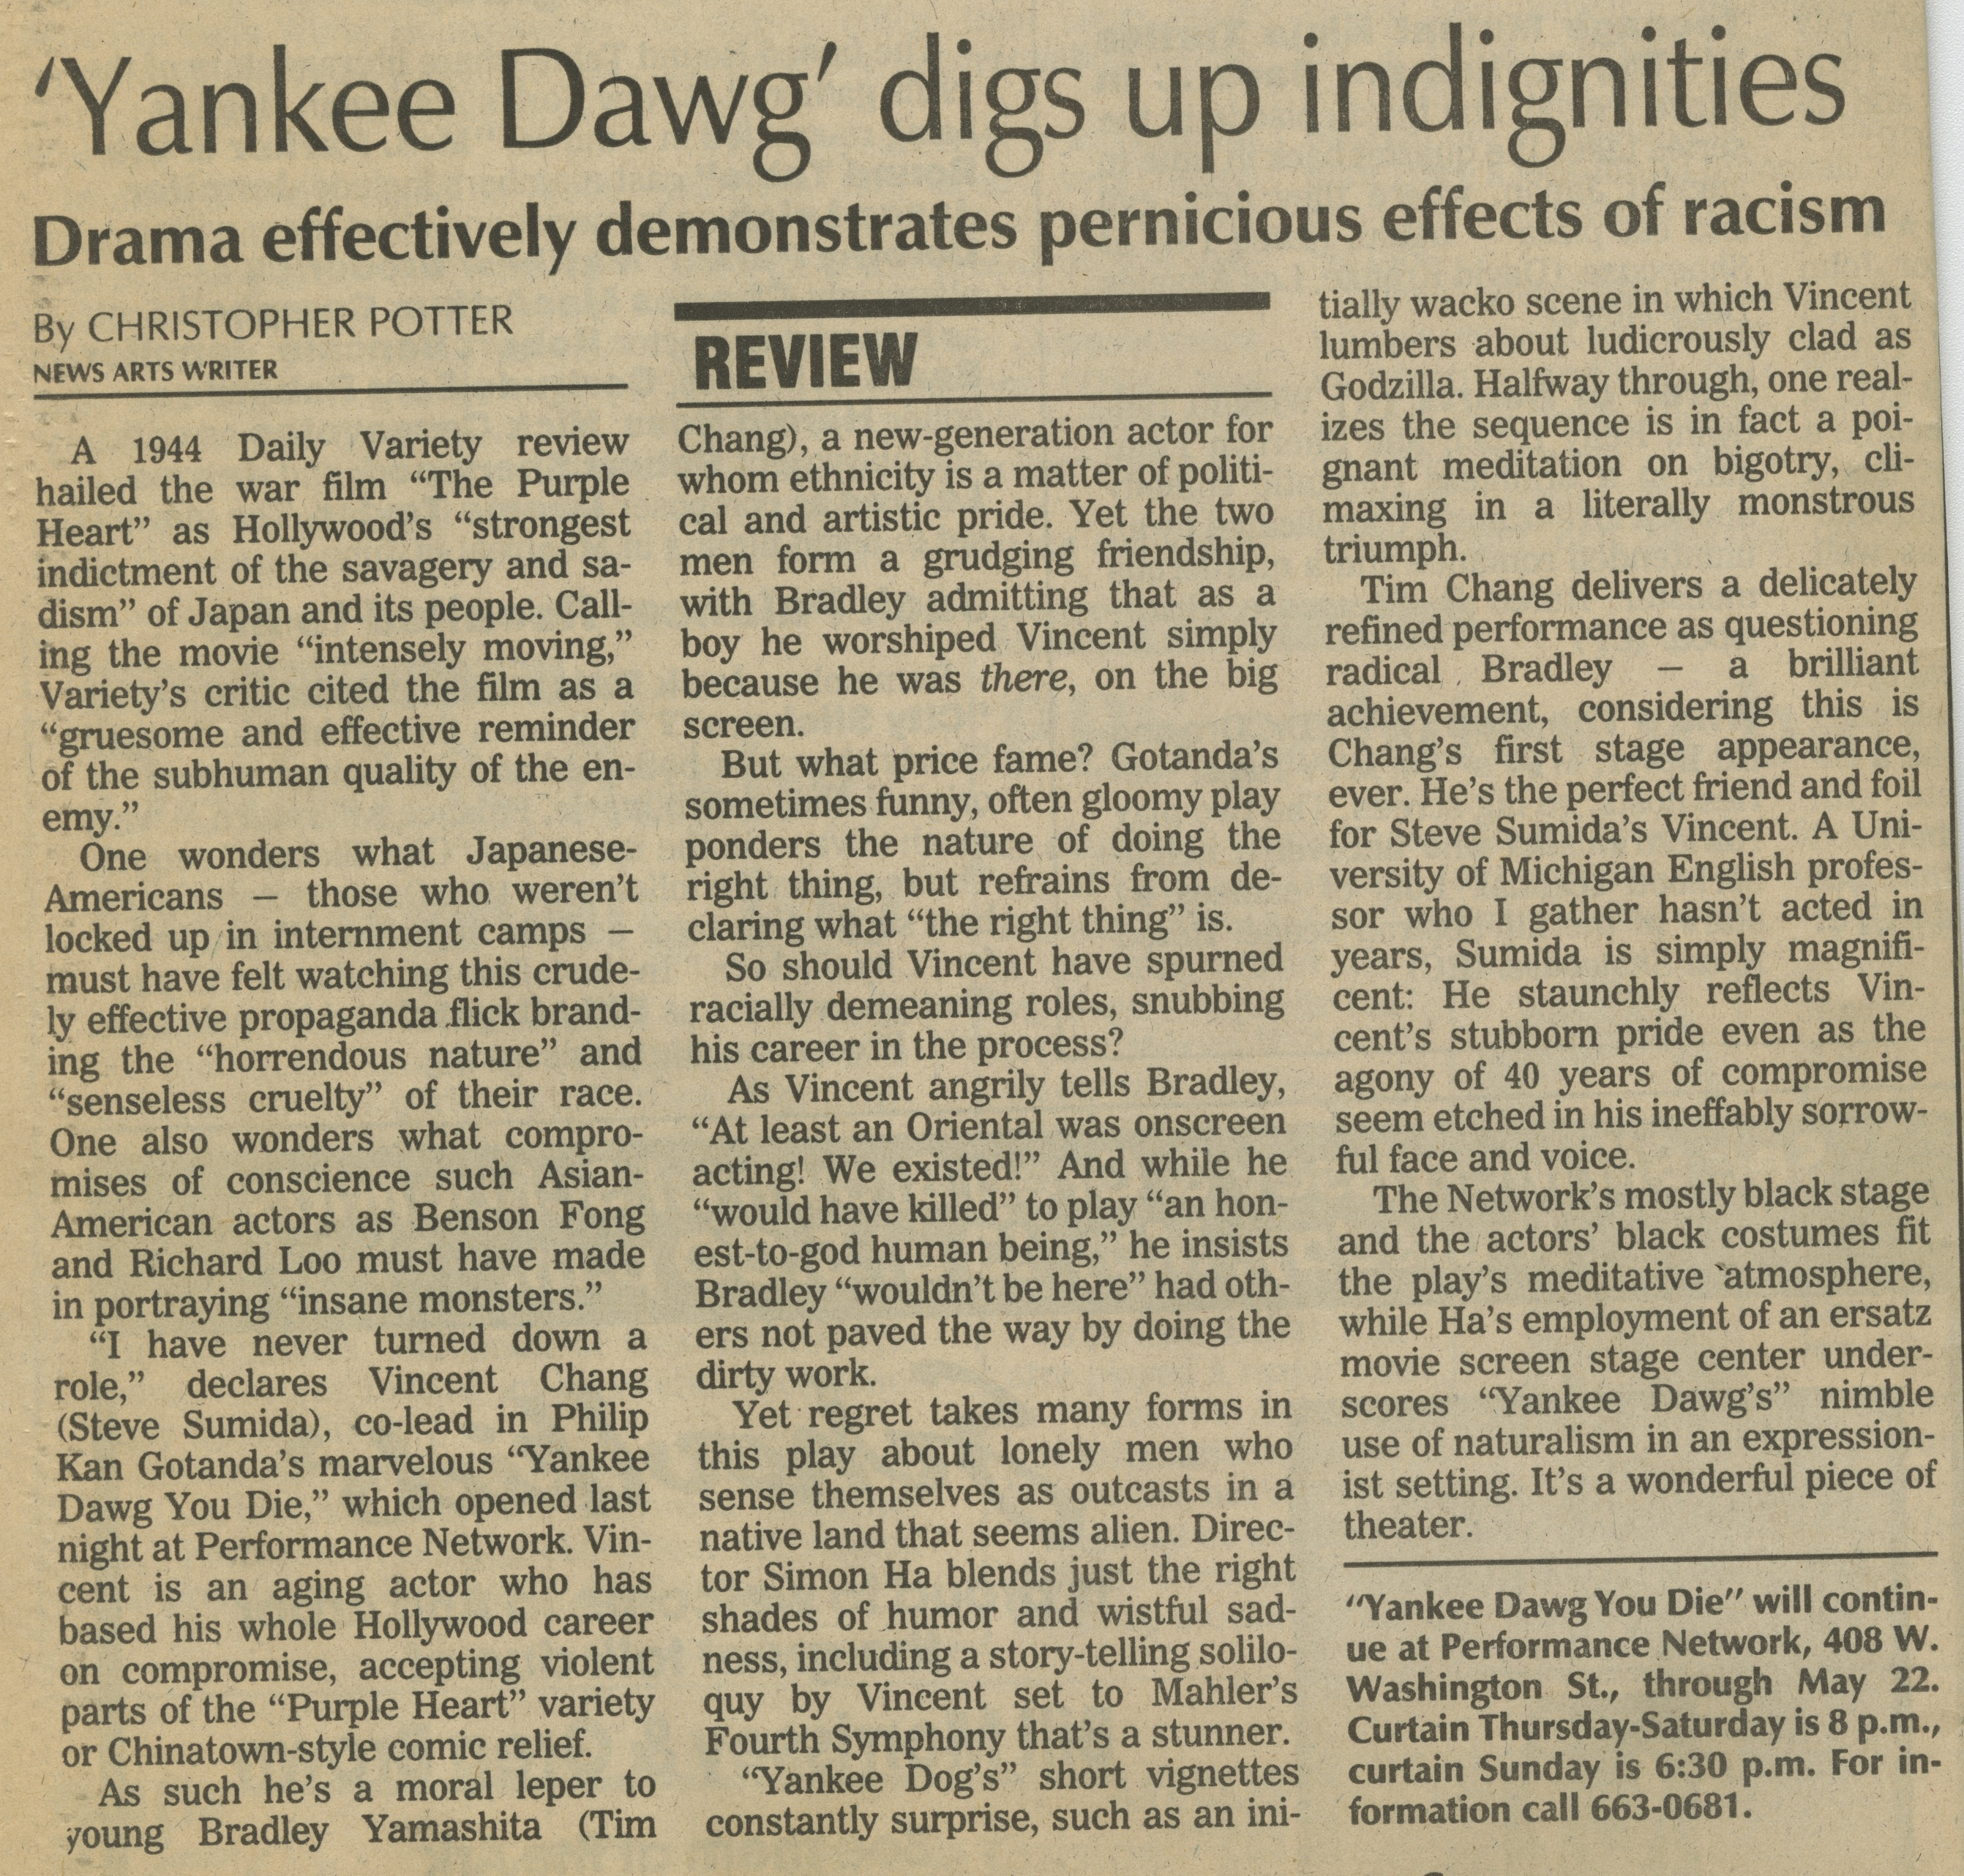 'Yankee Dawg' digs up indignities image